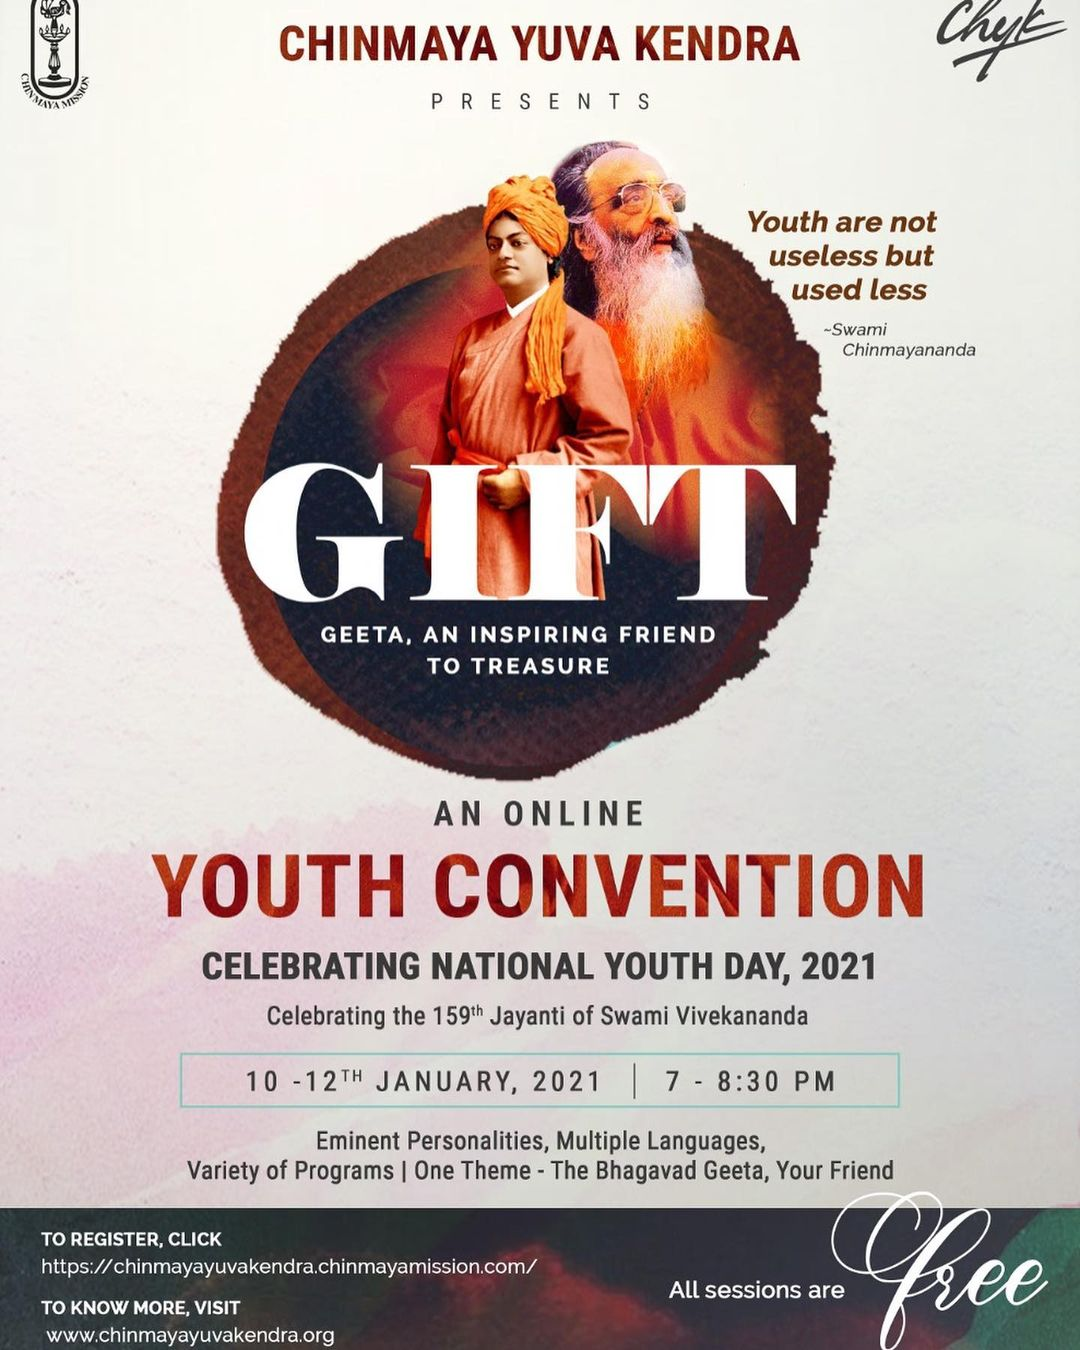 GIFT : Geeta an Inspiring Friend to Treasure!   A wonderful initiative by Chinmaya Mission for Youngsters this National Youth Day. Check out the details on the poster.   All sessions are free.   #bhagwadgeeta #srimadbhagavadgita #chinmayamission #knowledge #youthday2020